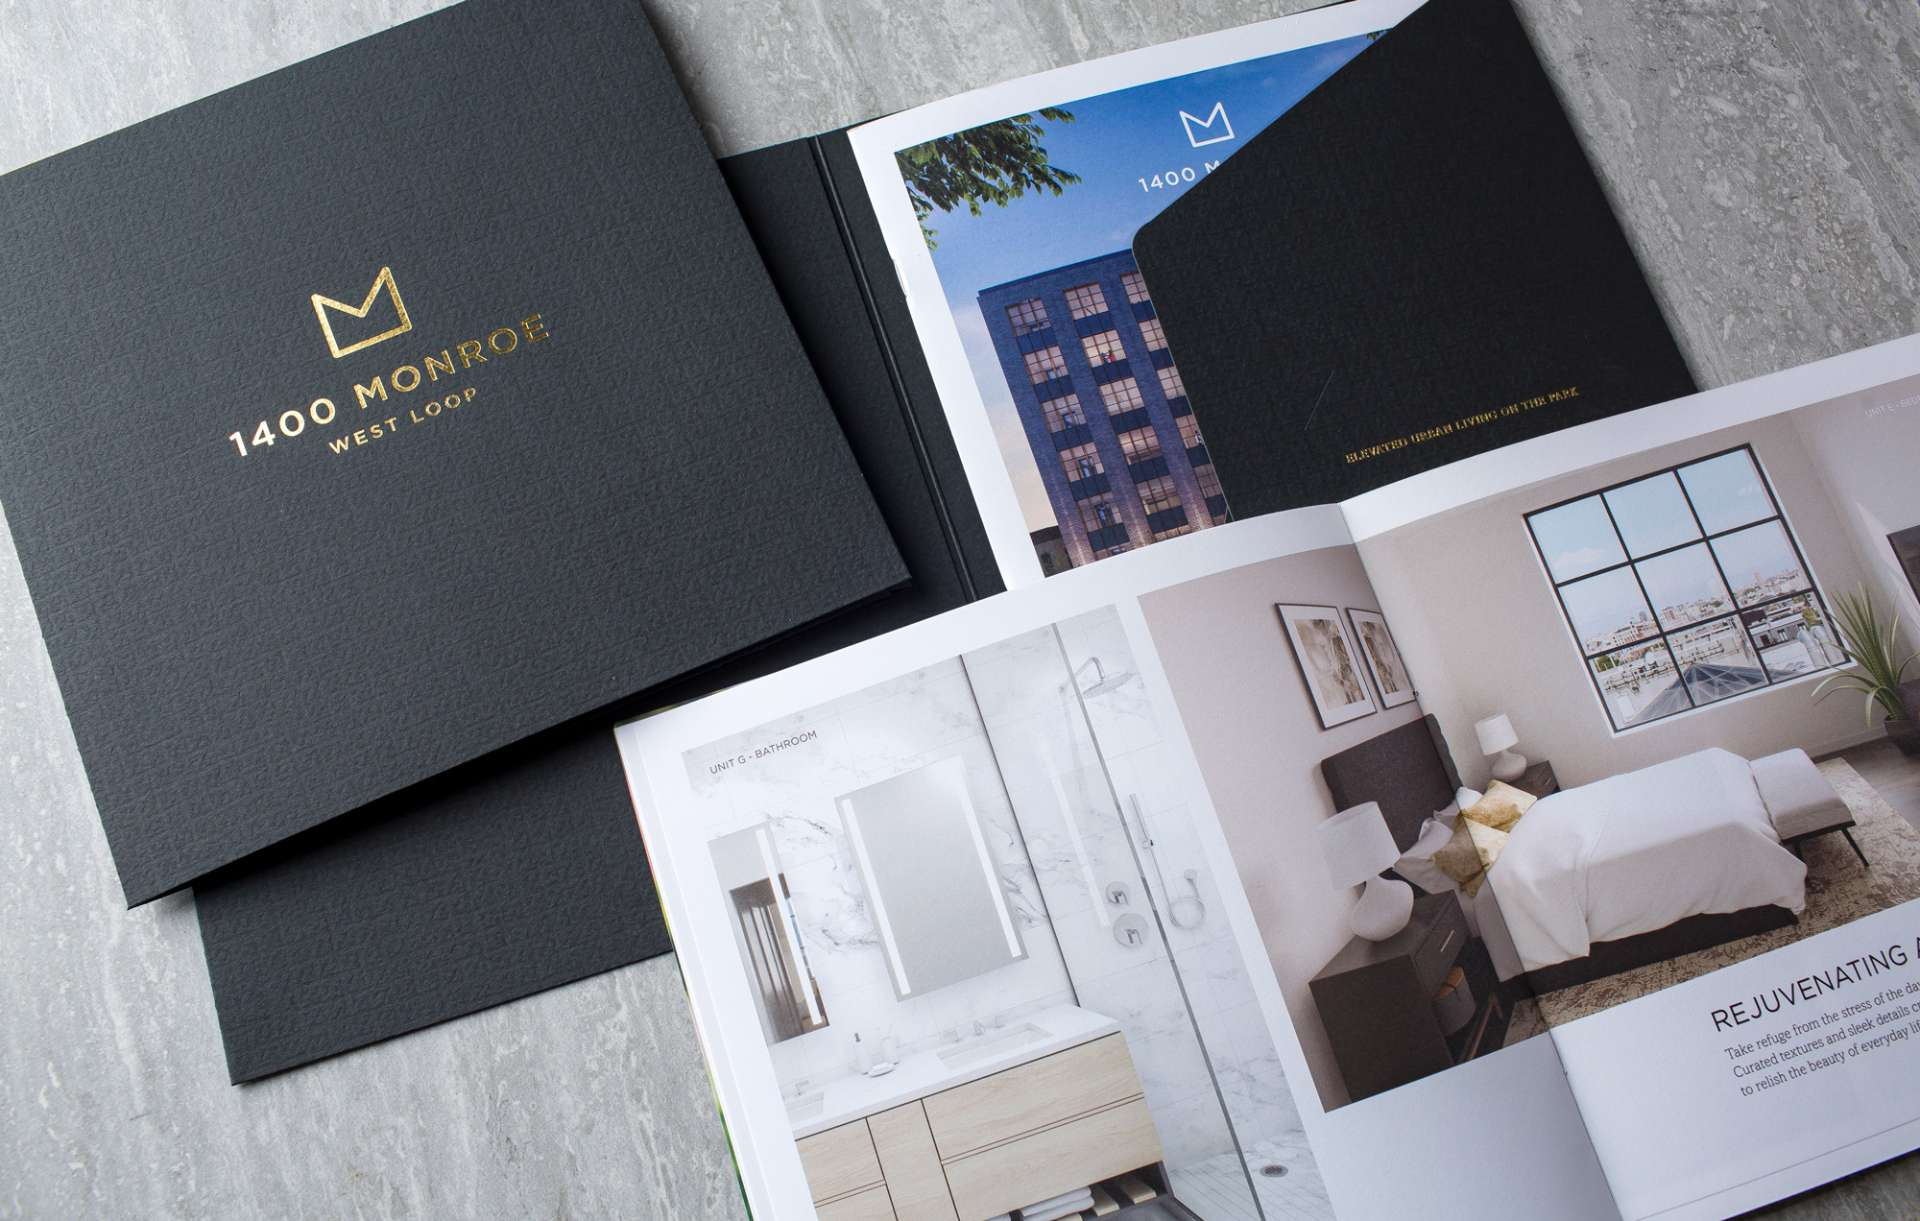 Collateral kit designed for real estate brand 1400 Monroe